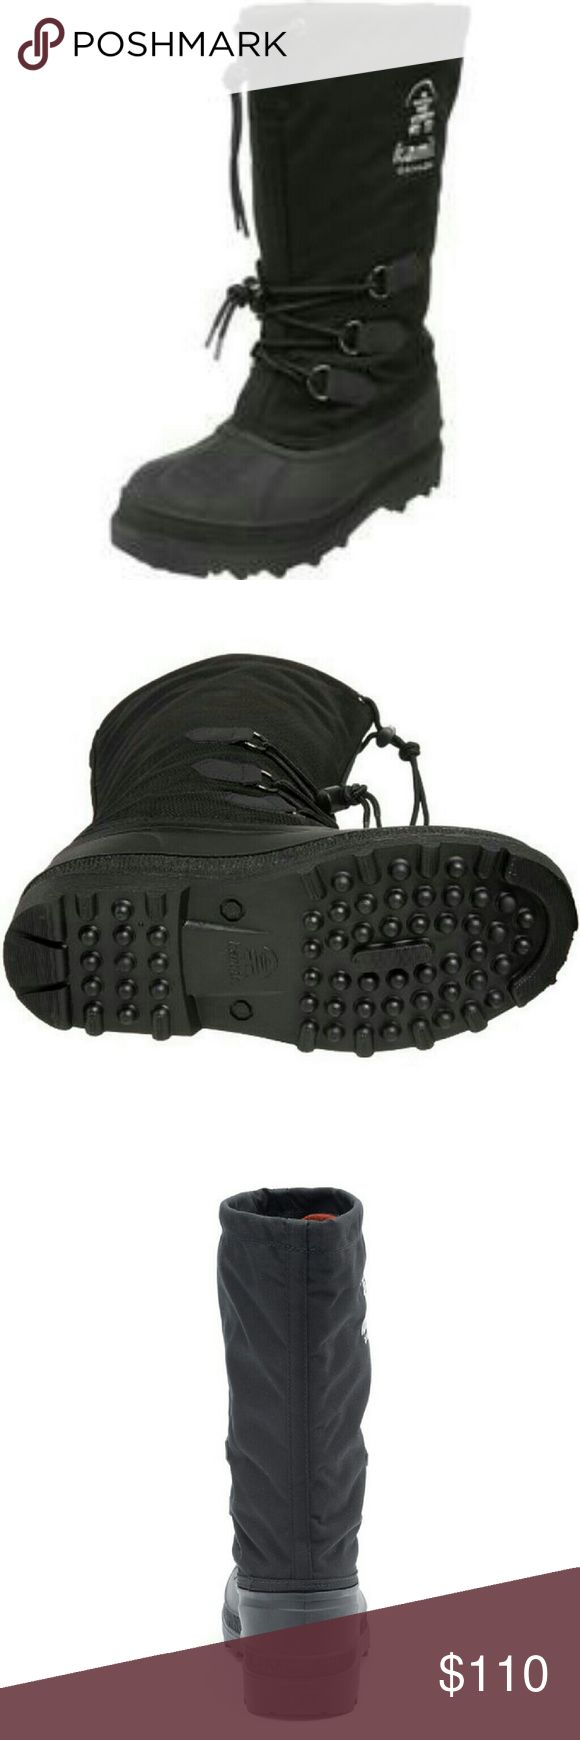 """Coming Soon FEATURES Waterproof 1000 denier nylon upper Seam sealed waterproof construction Removable 8mm Zylex liner Moisture-wicking lining Lace lock snow collar Adjustable midfoot laces Waterproof and flexible rubber shell Kamik?s SNOWBOB rubber winter outsole  CONSTRUCTION Rubber, nylon upper Zylex liner Rubber outsole SHOE DETAILS Round toe Lace-up closure Padded footbed Approx Shaft height 13.5"""" Approx Shaft width 18"""" Kamik Shoes Winter & Rain Boots"""